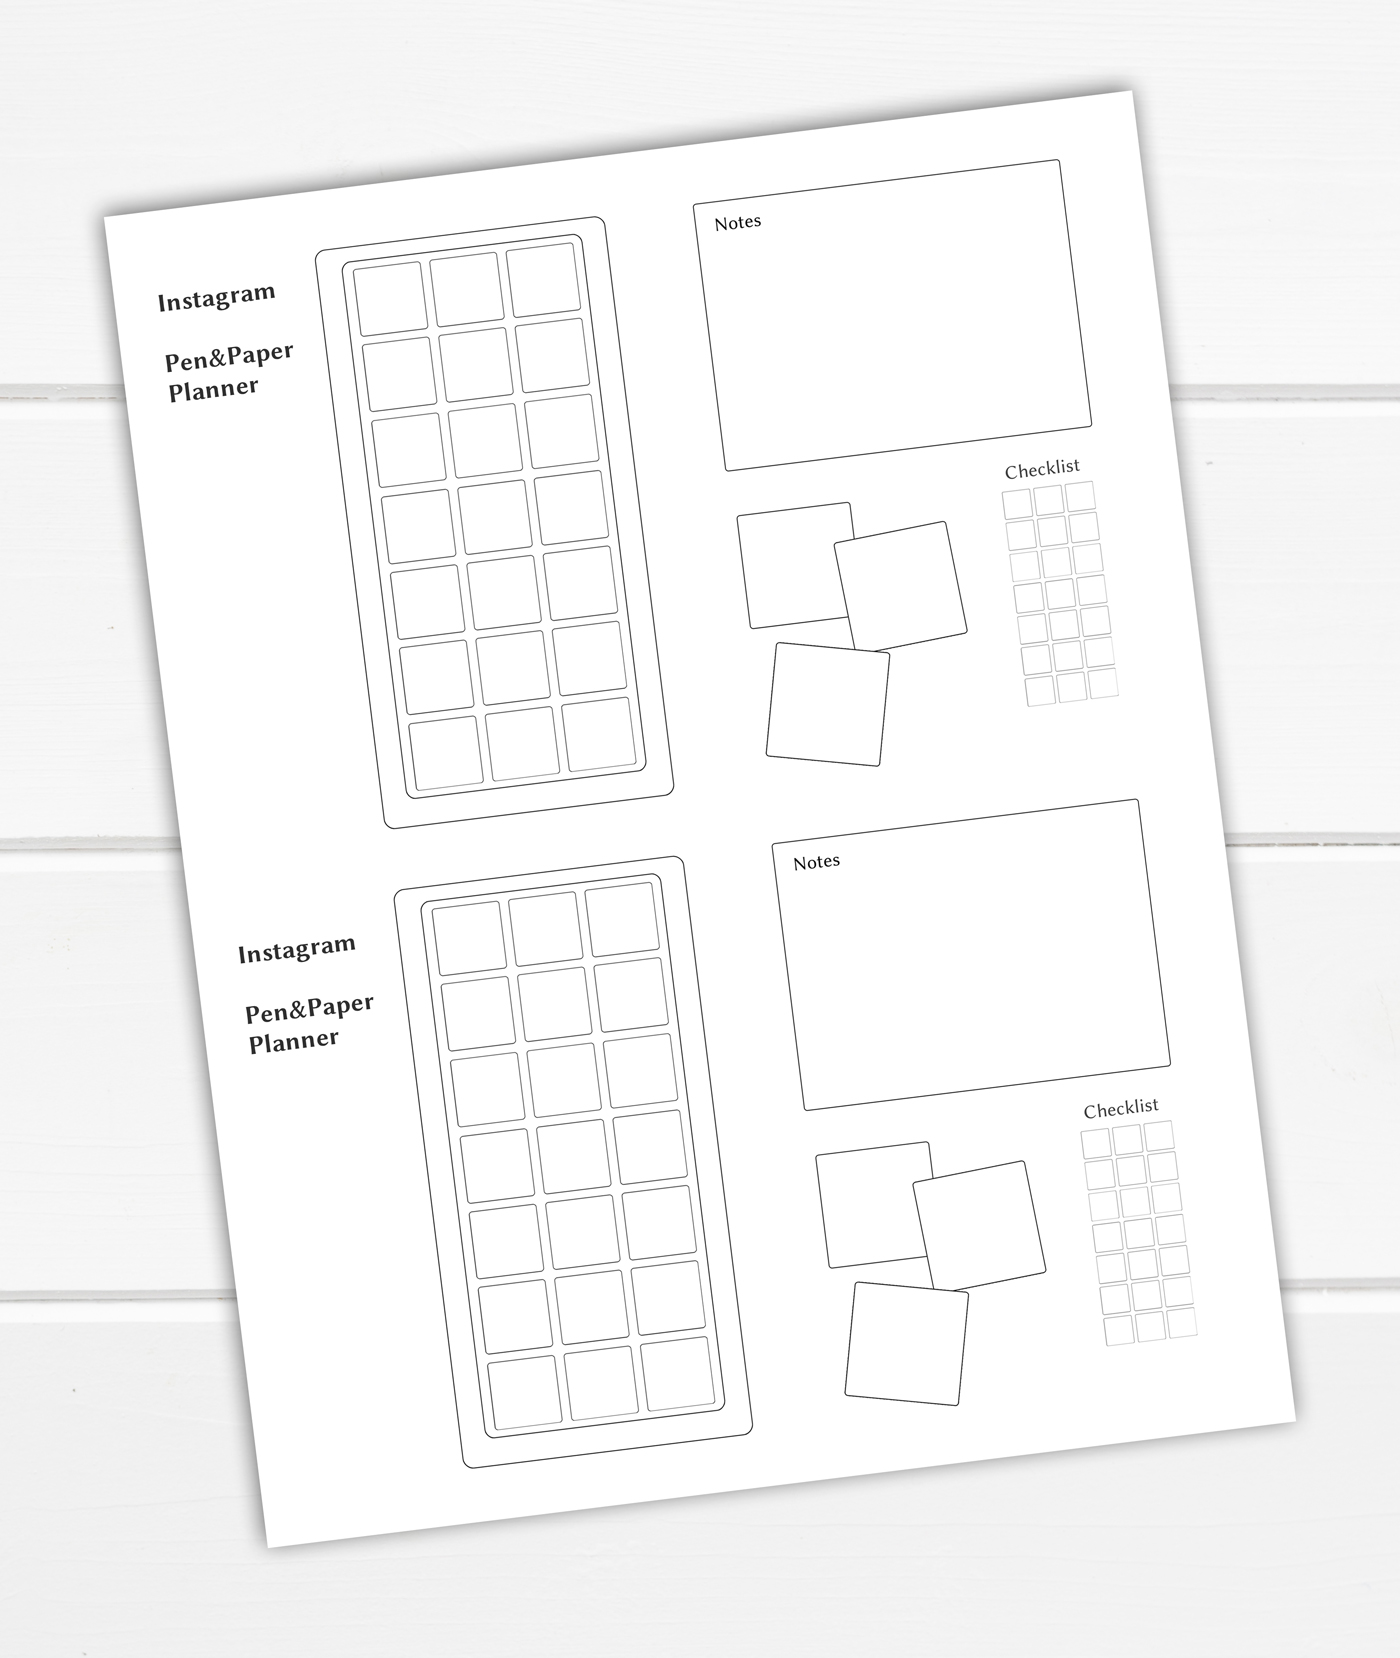 Instagram in my Bullet Journal: Cohesive Feed Planner & Tracker (+ Free Printable) My creative and minimalist approach to social media scheduling and tracking: I made a simple spread for my bullet journal, with thumbnails to doodle or write notes/hashtags in, a checklist to mark each post, and room for additional notes, important dates, future picture ideas... I hope you enjoy this more relaxed, pen & paper approach to Instagram planning as much as I did!